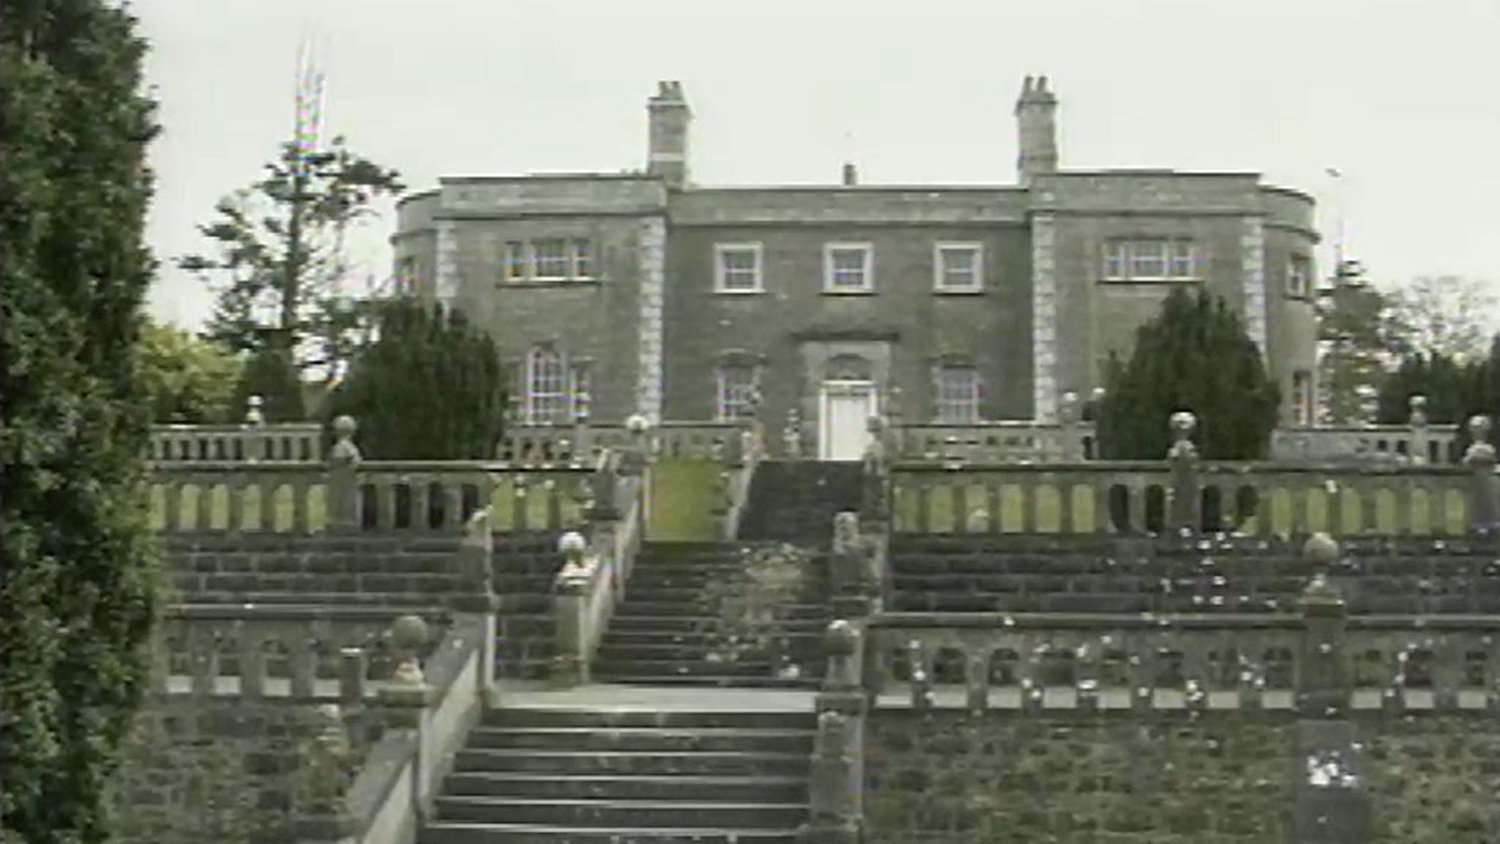 Rte Archives Environment Belvedere House To Be Restored